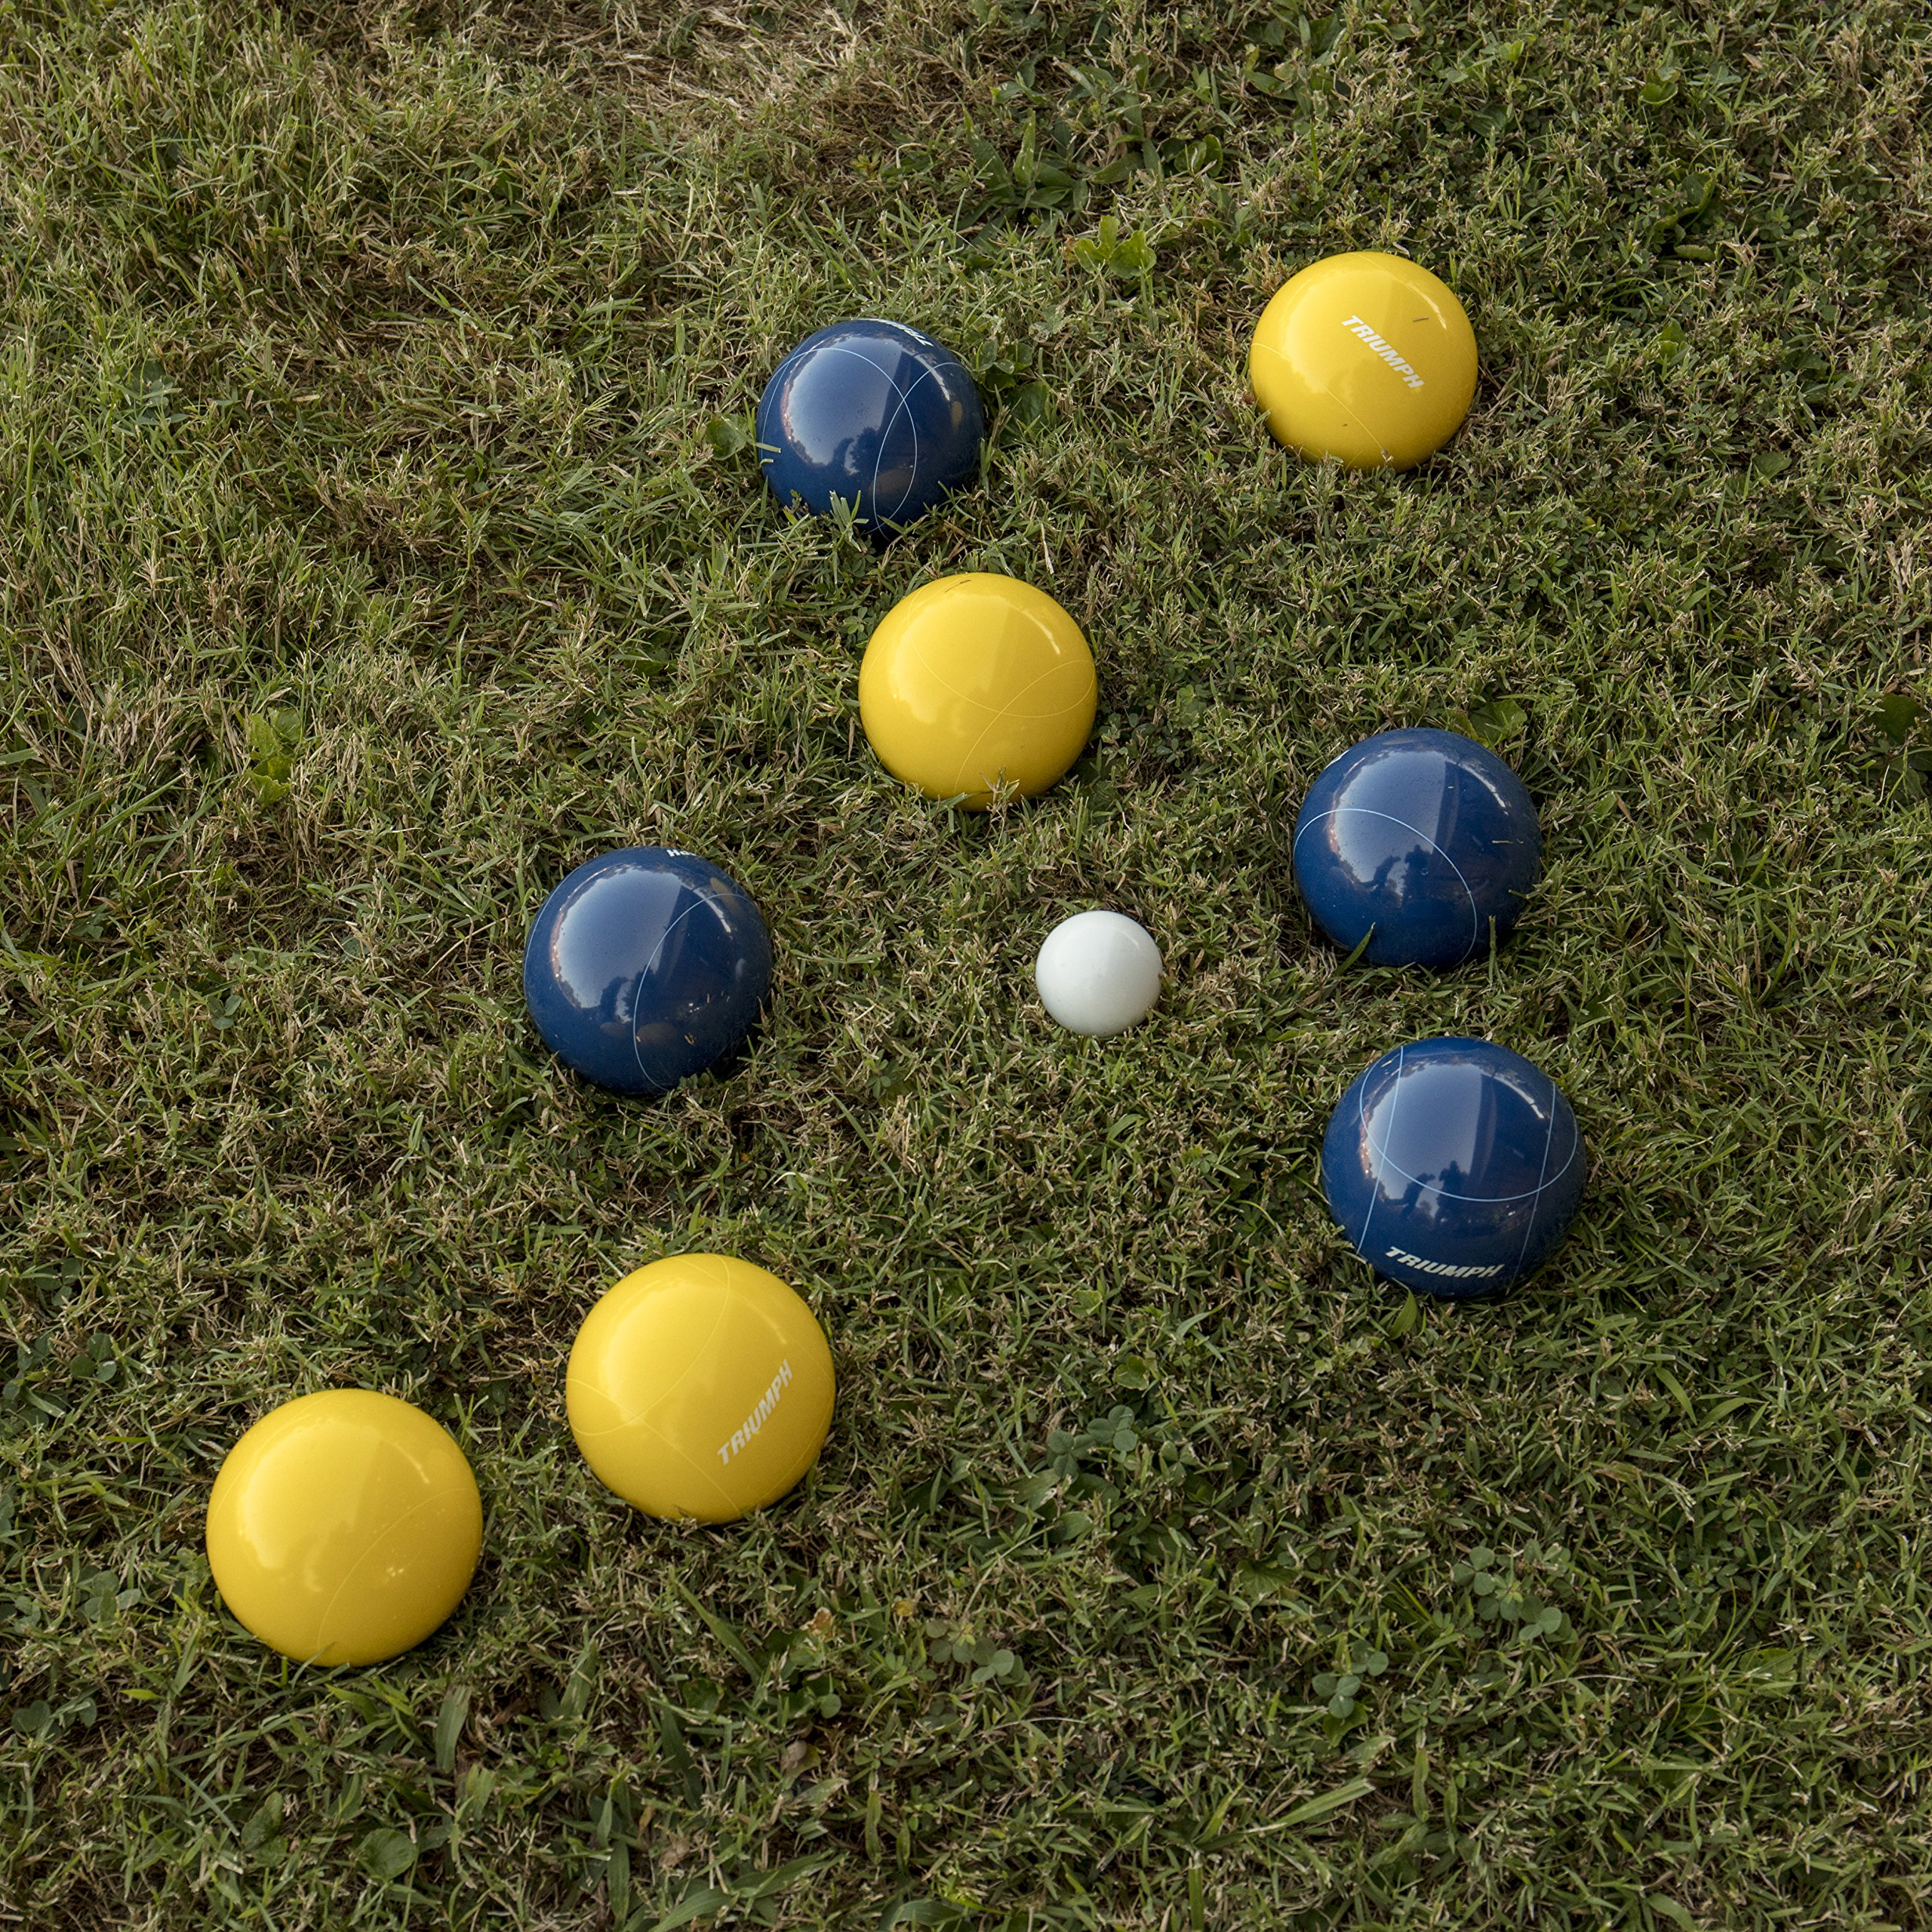 Triumph All Pro 100mm Bocce Set Includes Eight Bocce Balls, One 50mm Jack, and Carry Bag by Triumph Sports (Image #9)